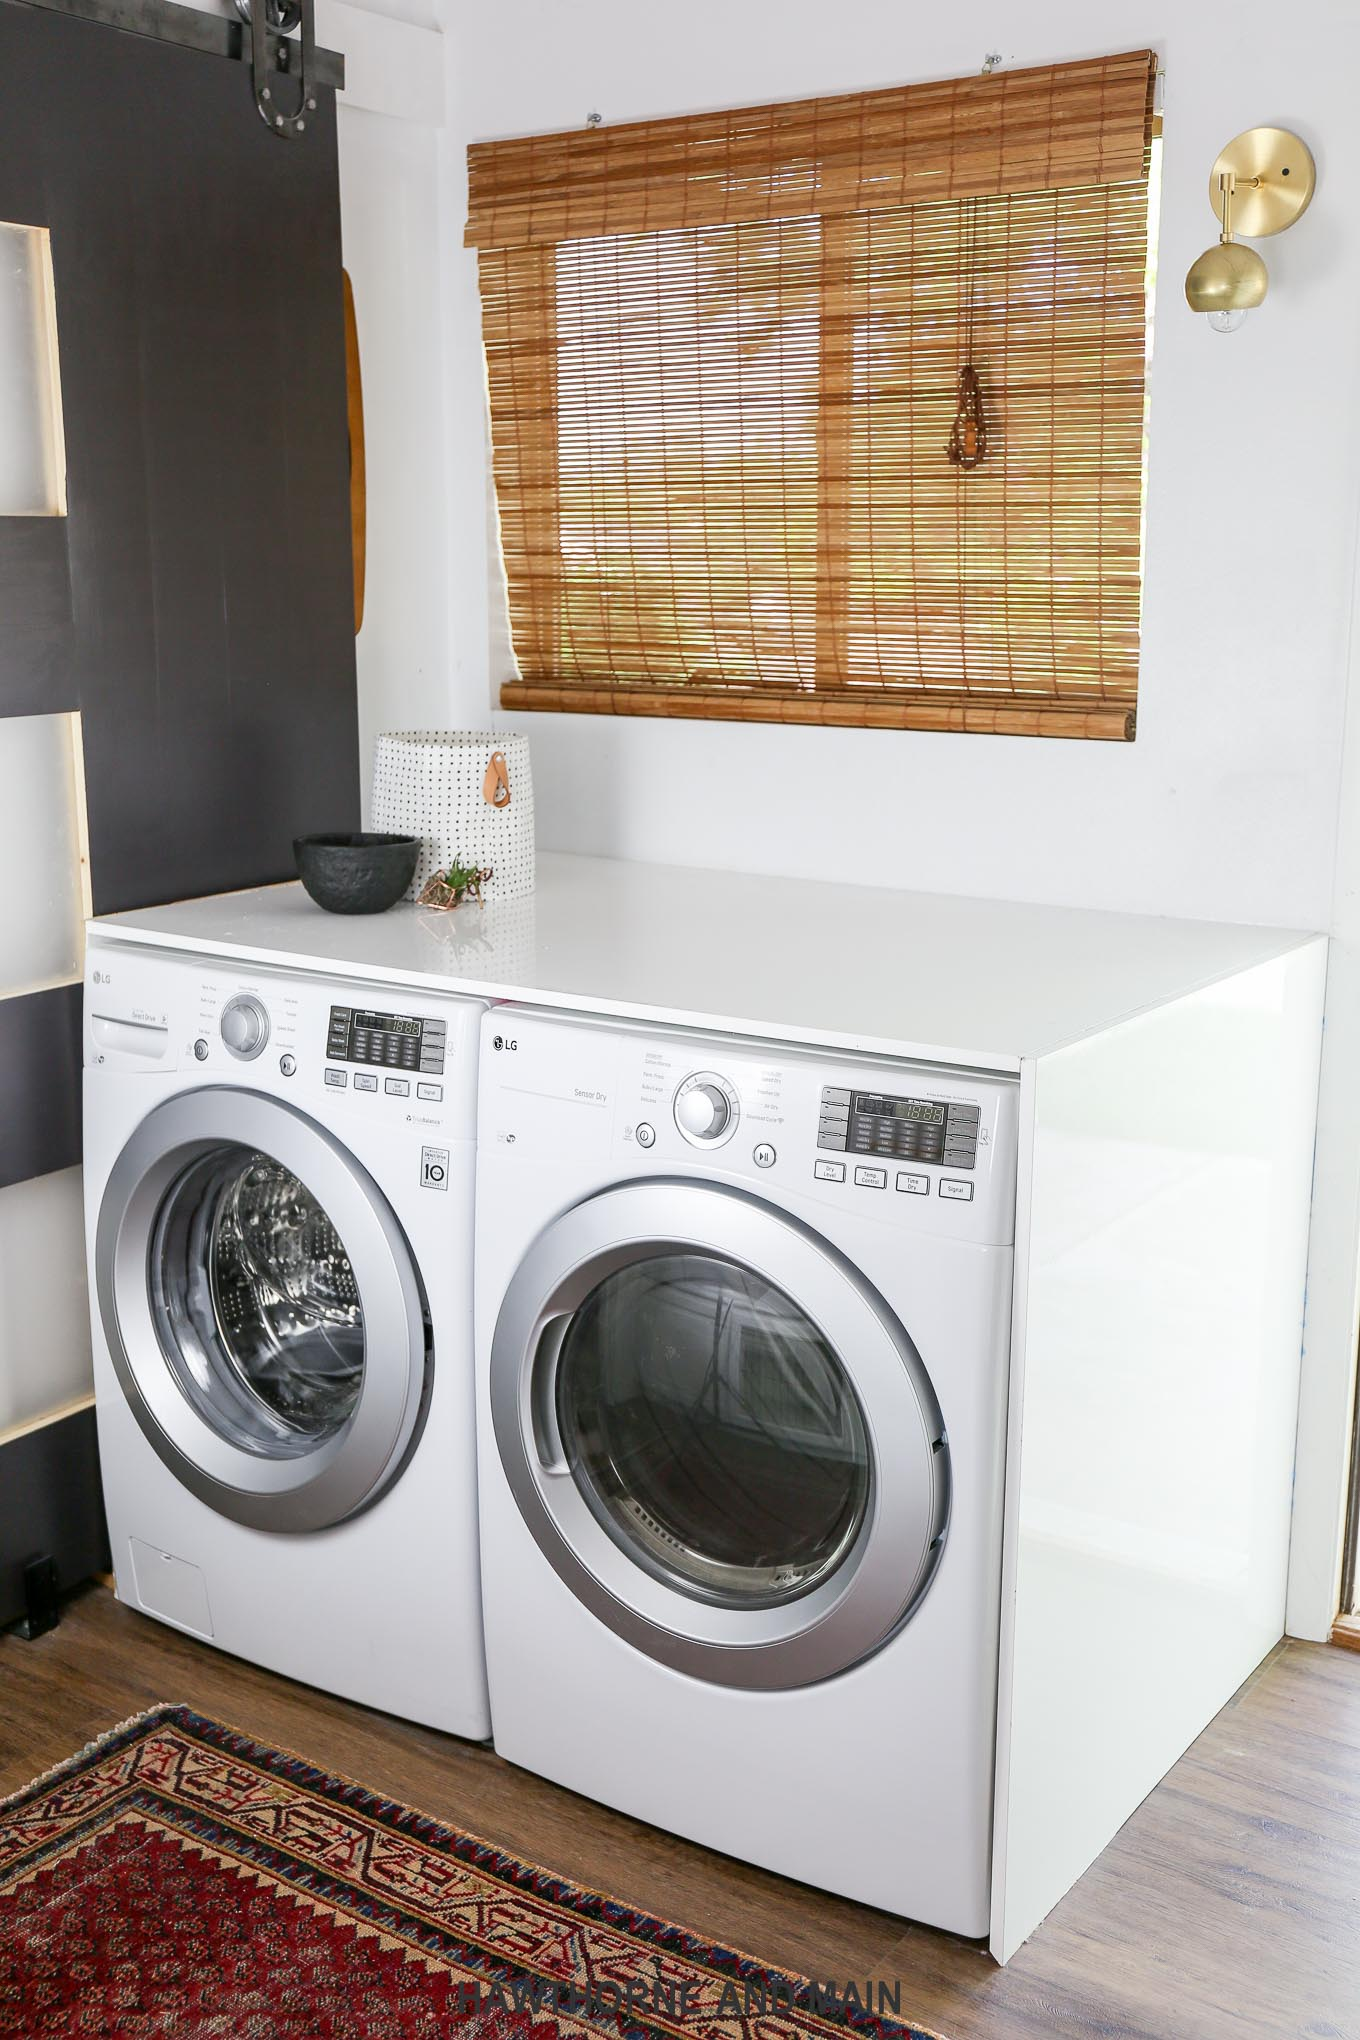 Laundry room makeover- Check out all of the sources